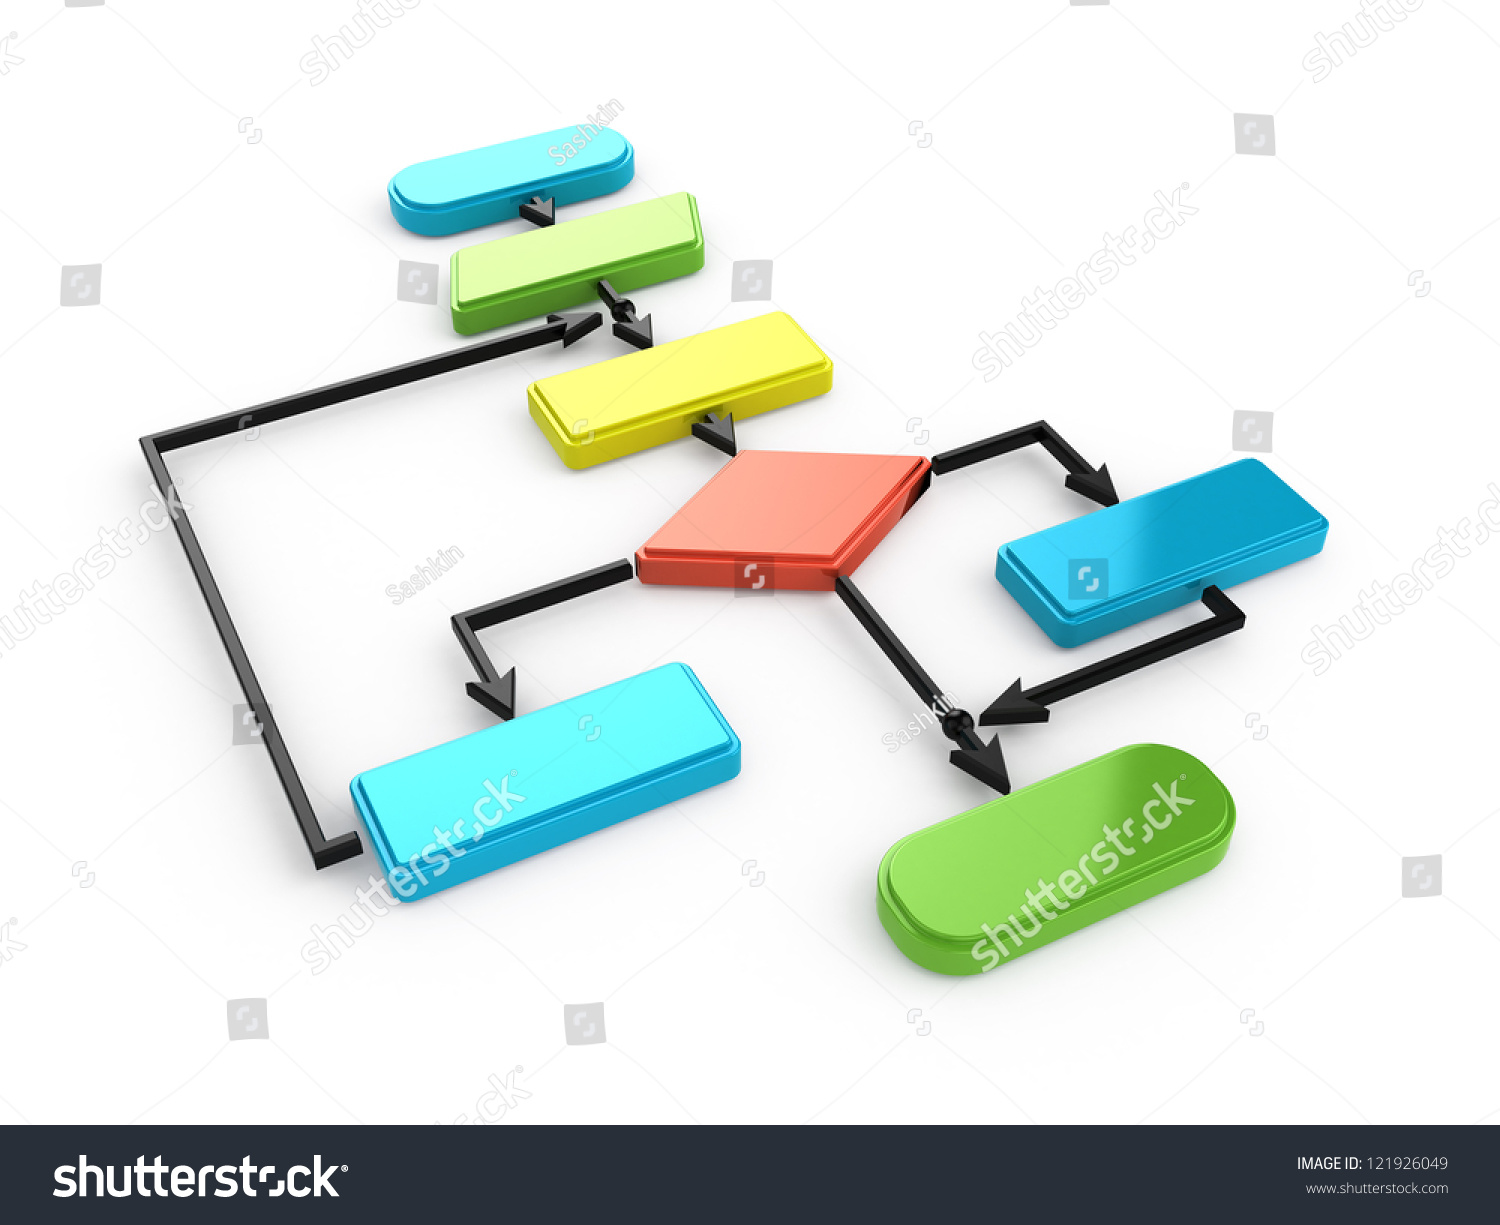 flow chart diagram stock photo    shutterstockflow chart diagram preview  save to a lightbox